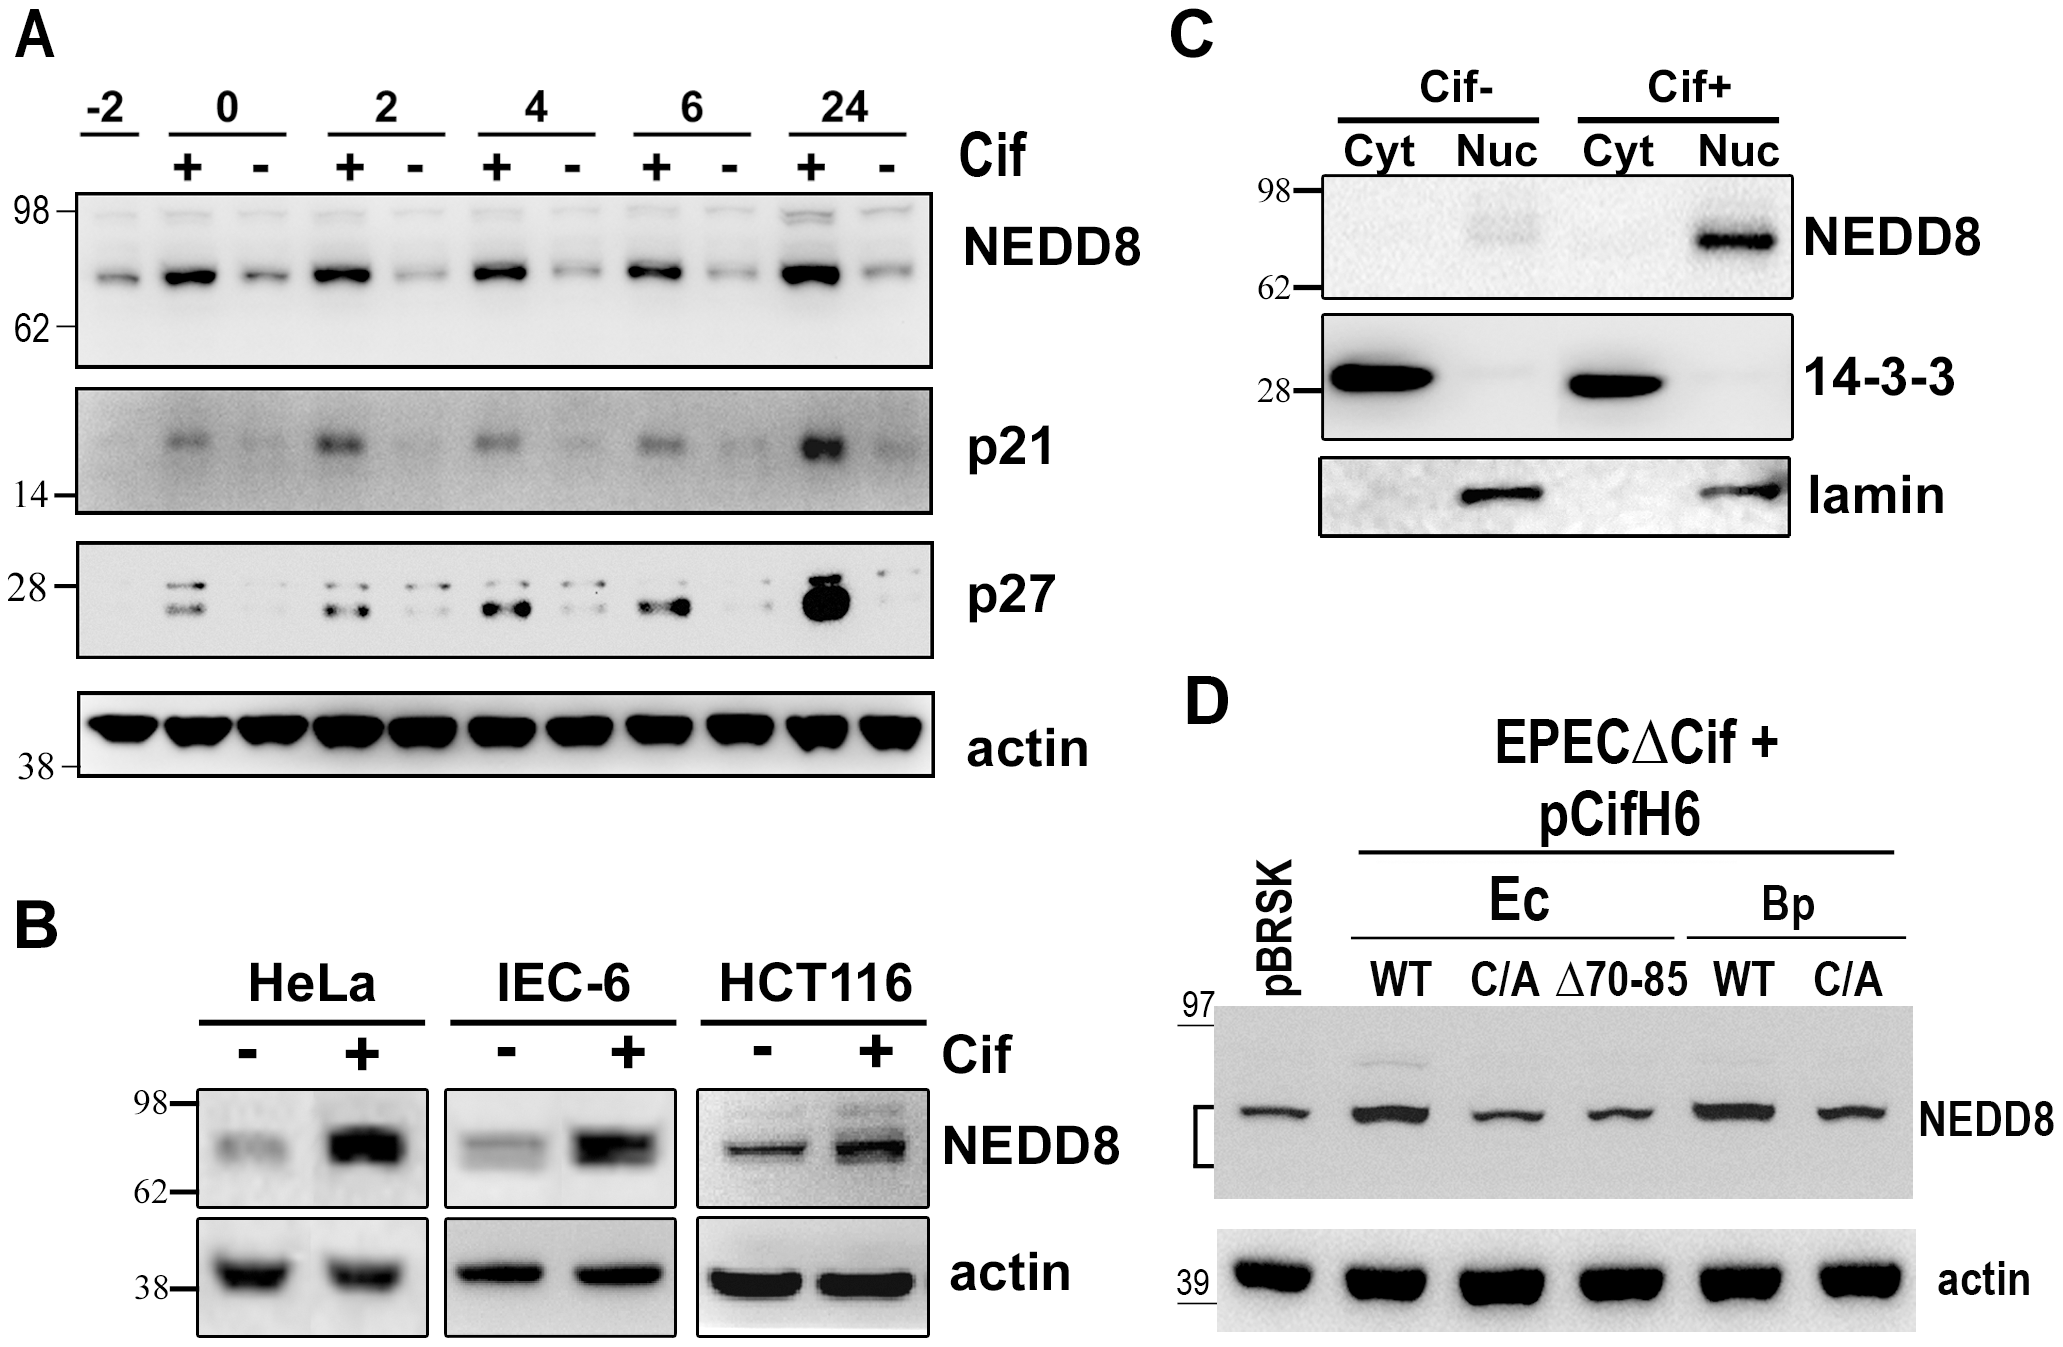 Infection with Cif-producing EPEC induces the accumulation of neddylated proteins.